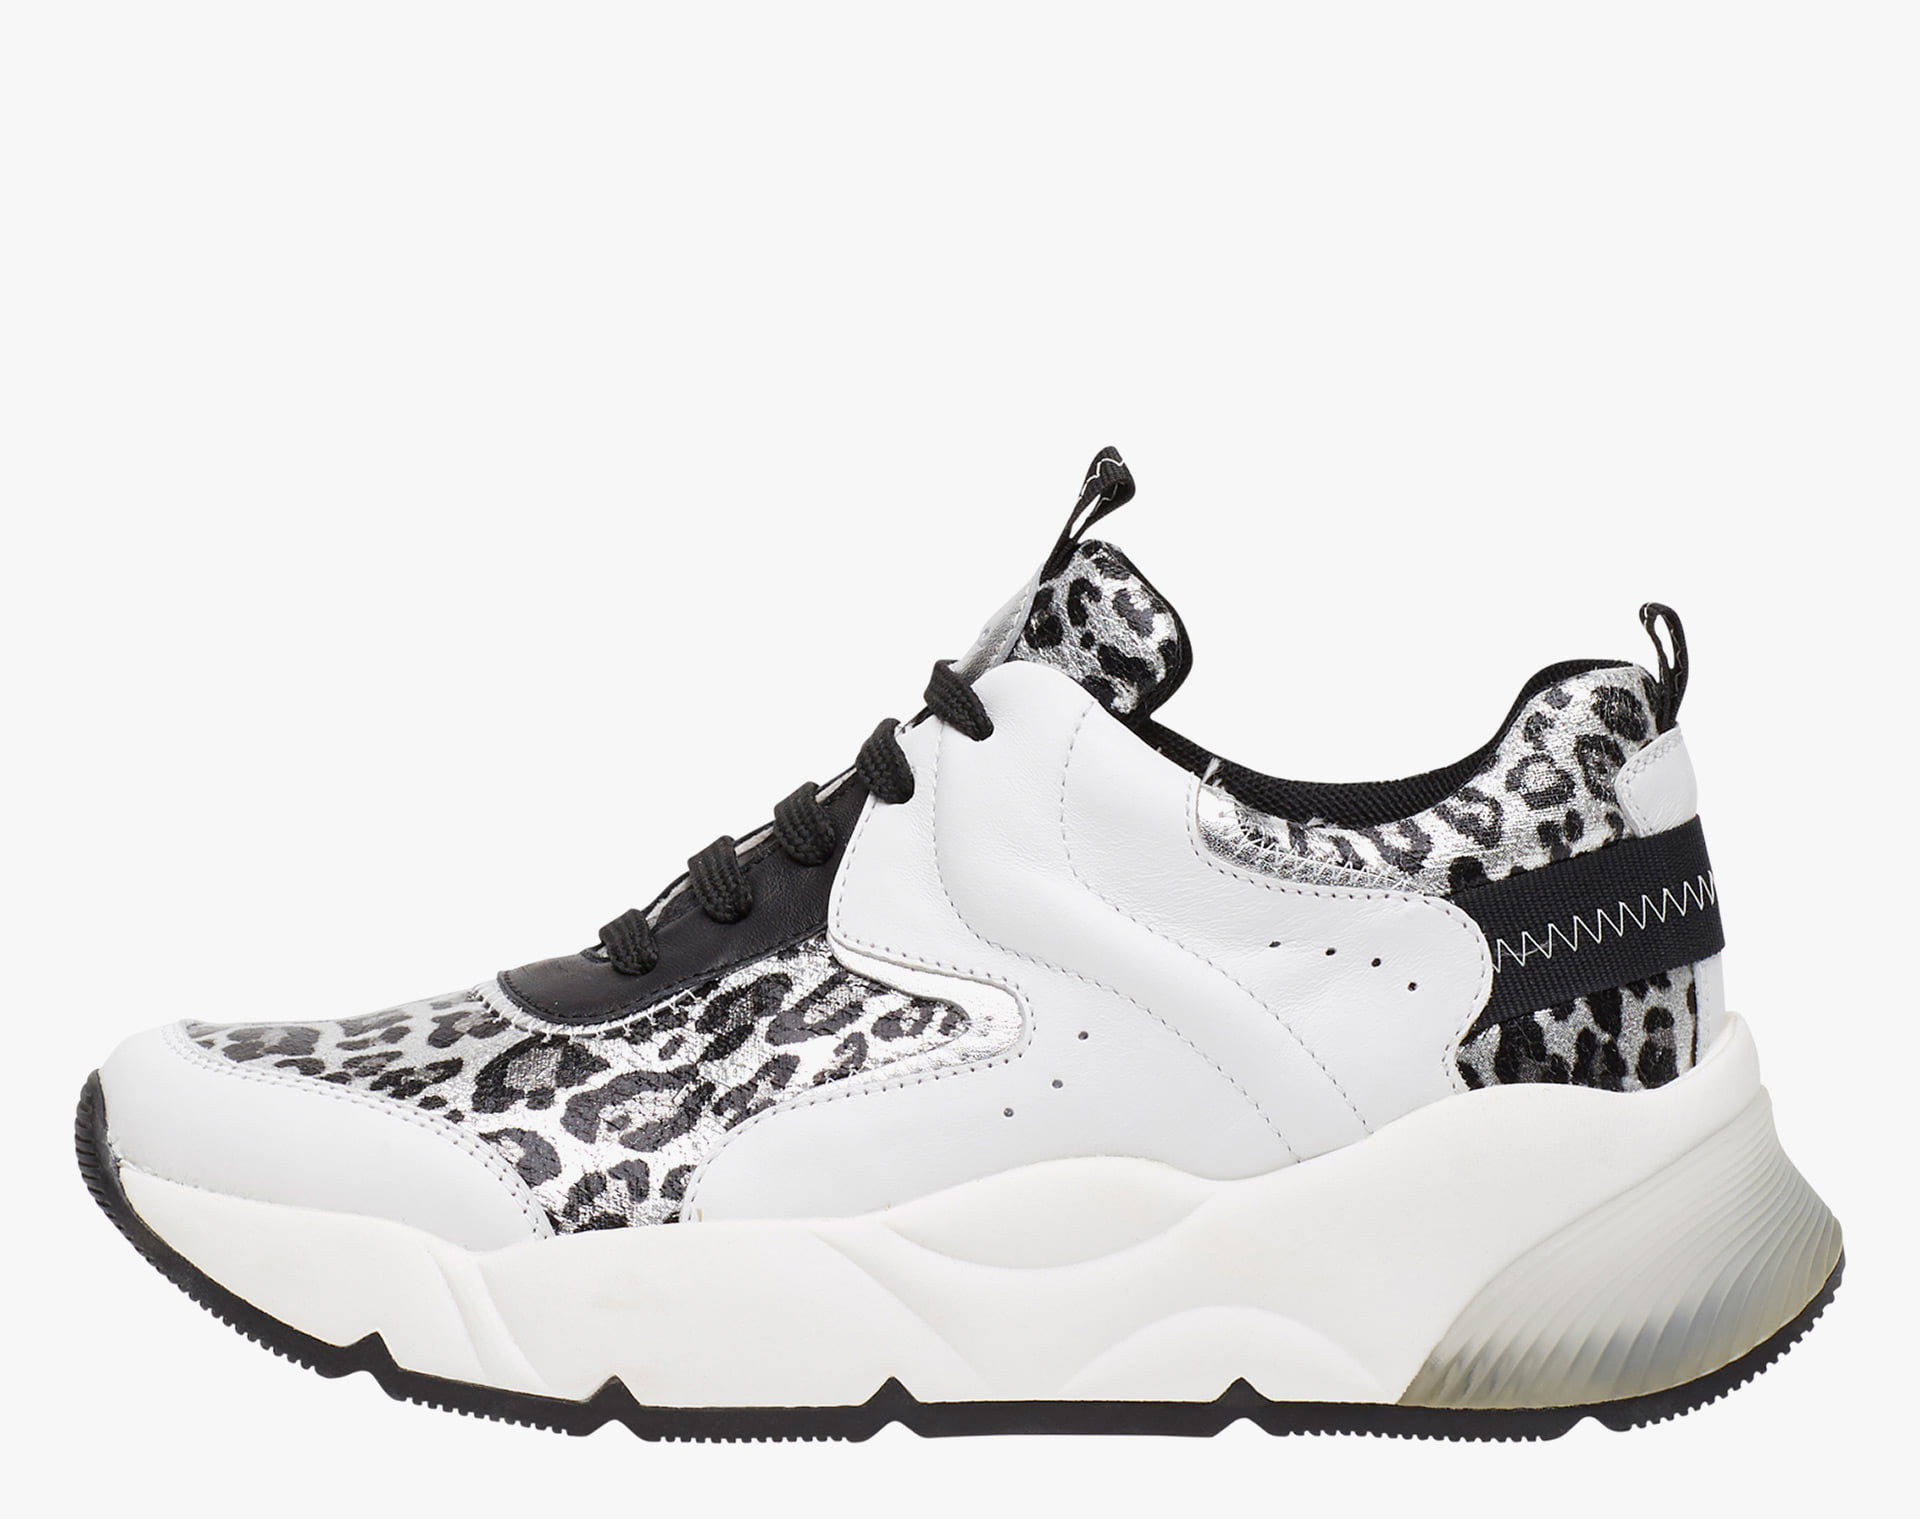 JENNIE - Sneakers with laminated animal print leather  - White/Black